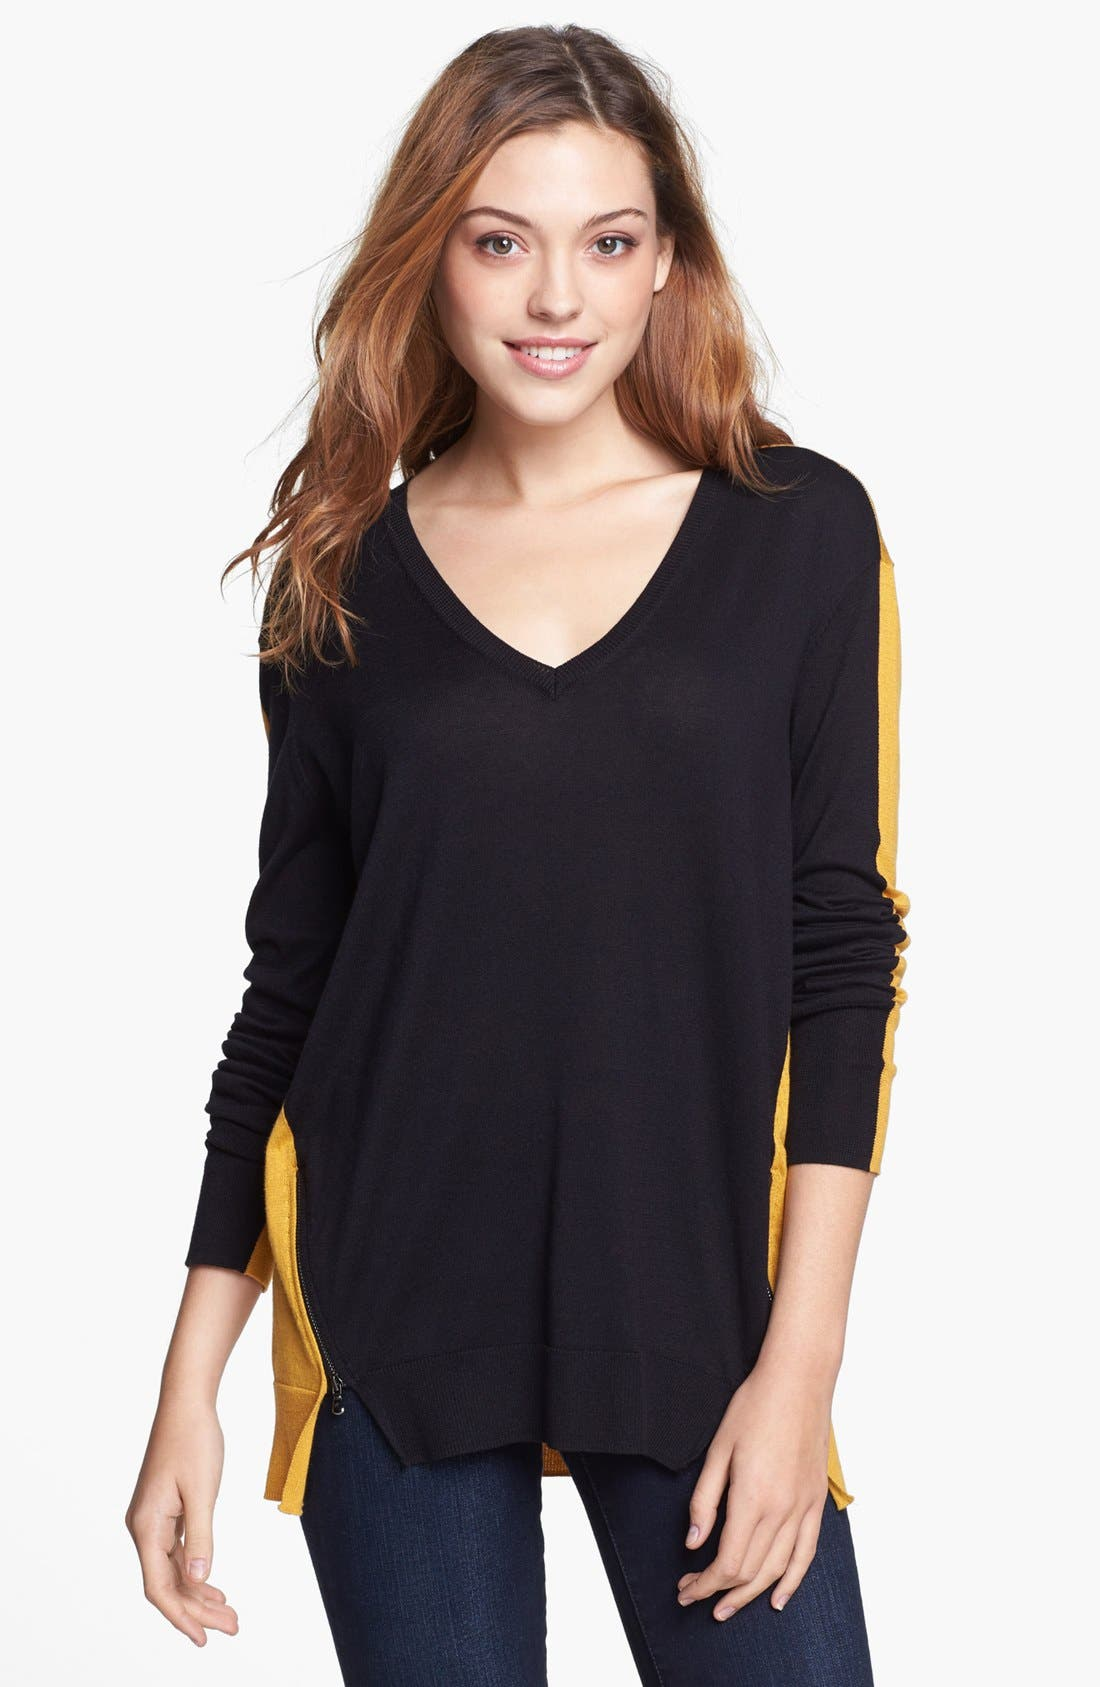 Main Image - Kenneth Cole New York 'Oden' Colorblock Sweater